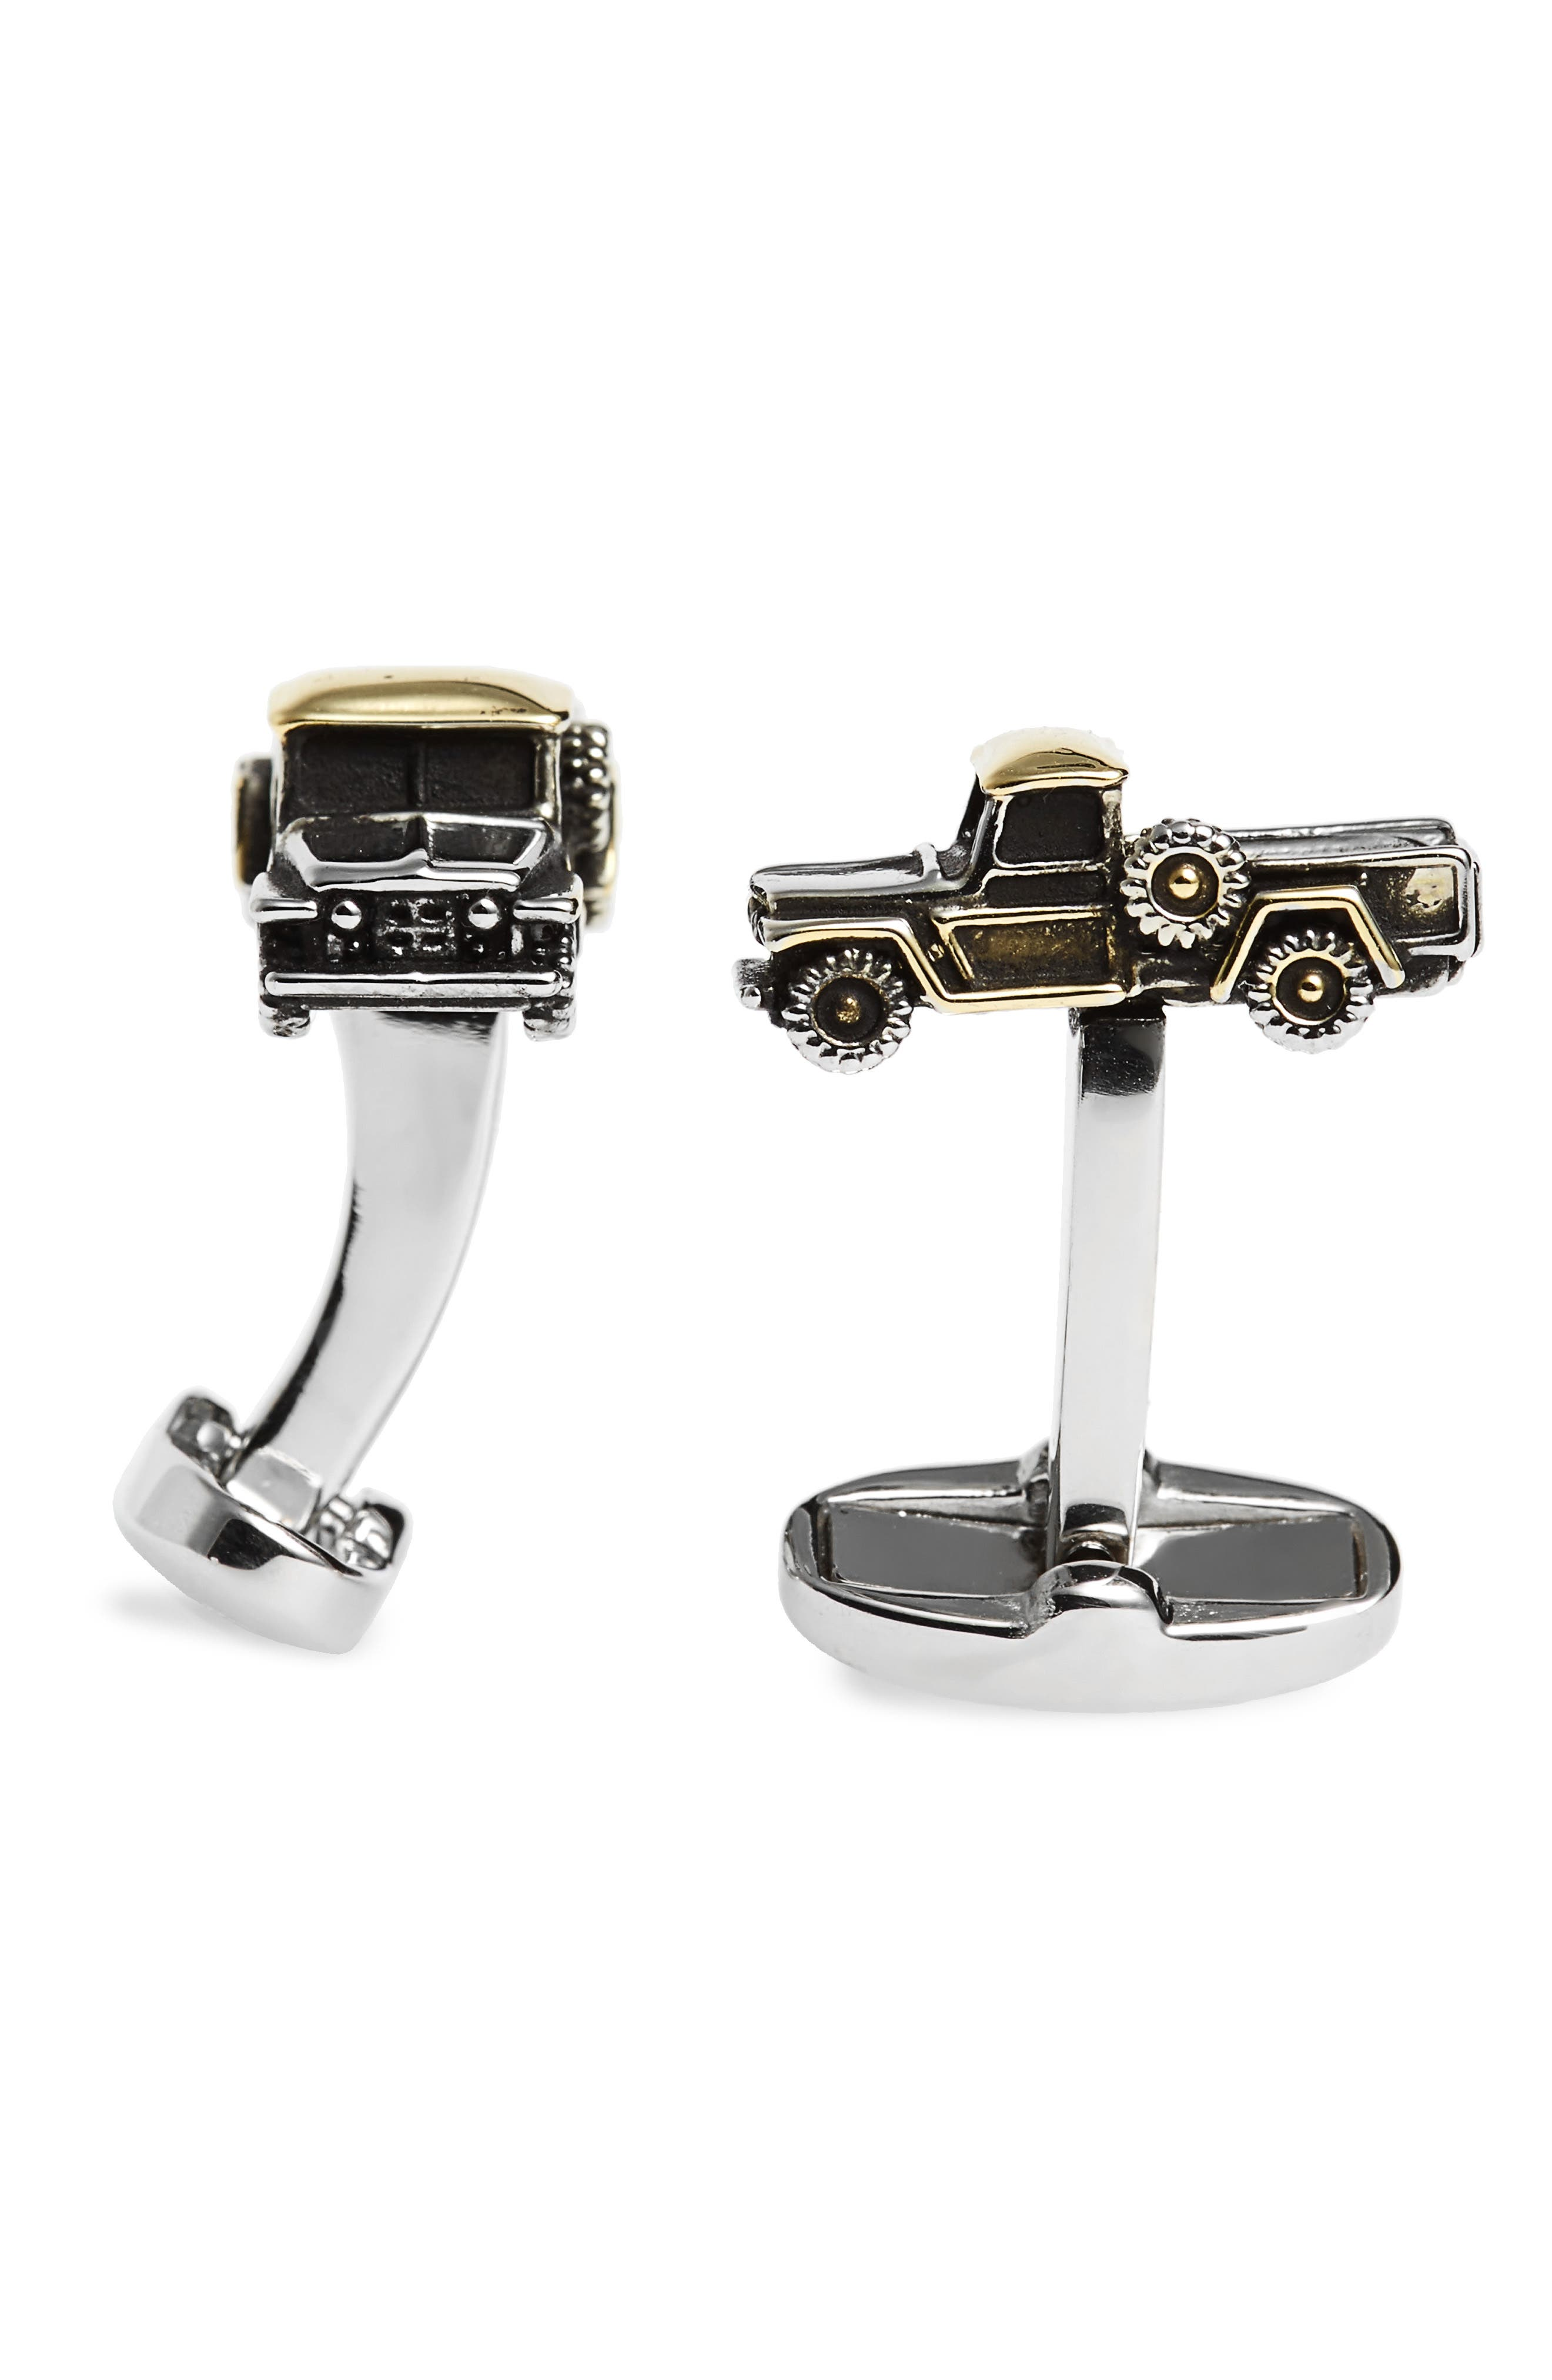 Truck Cuff Links,                             Main thumbnail 1, color,                             040